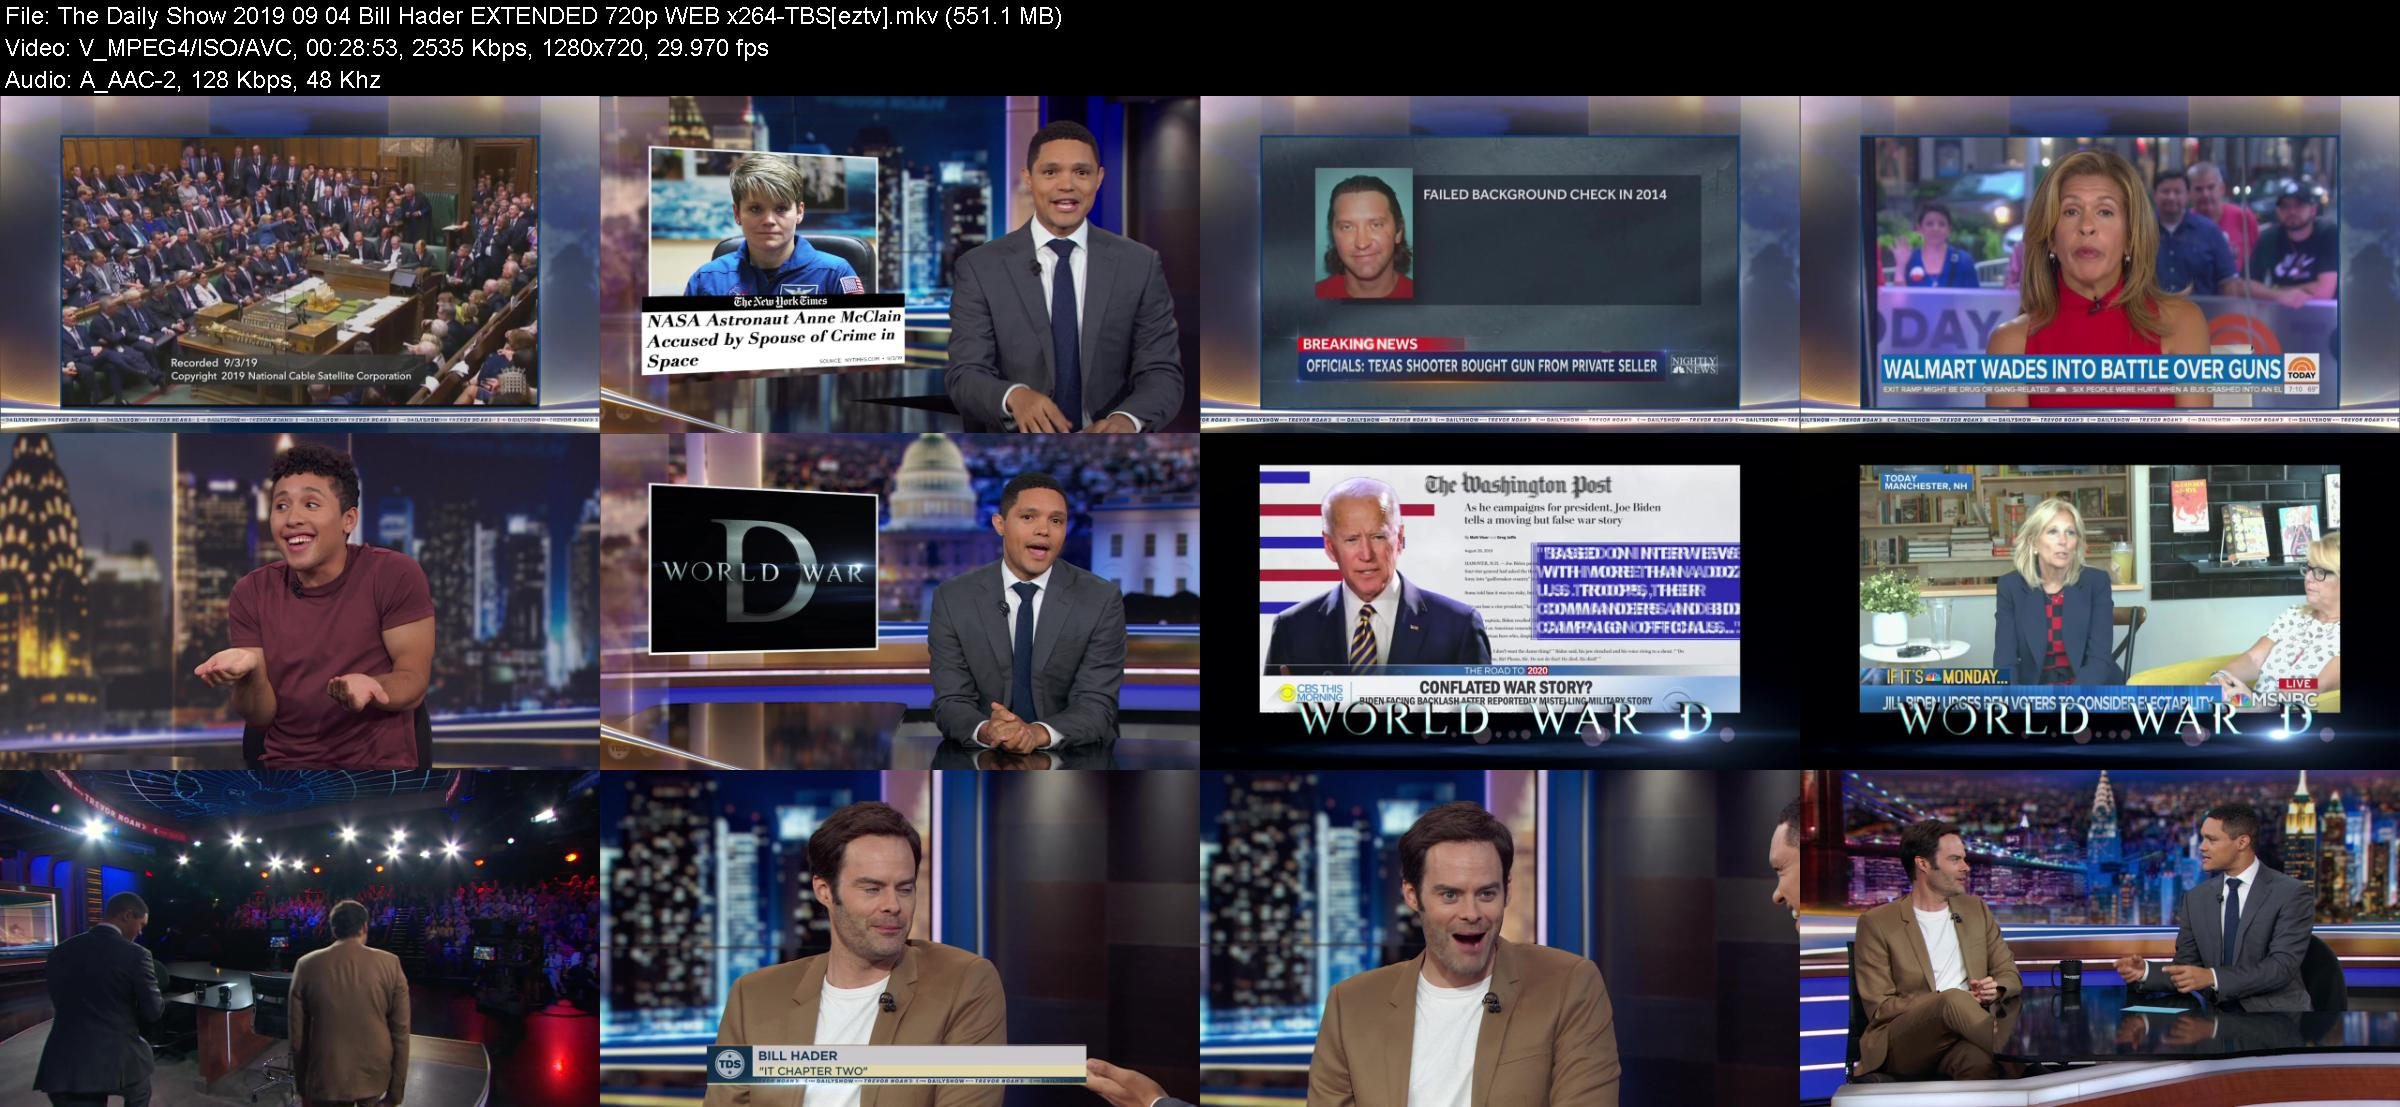 120220673_the-daily-show-2019-09-04-bill-hader-extended-720p-web-x264-tbs.jpg